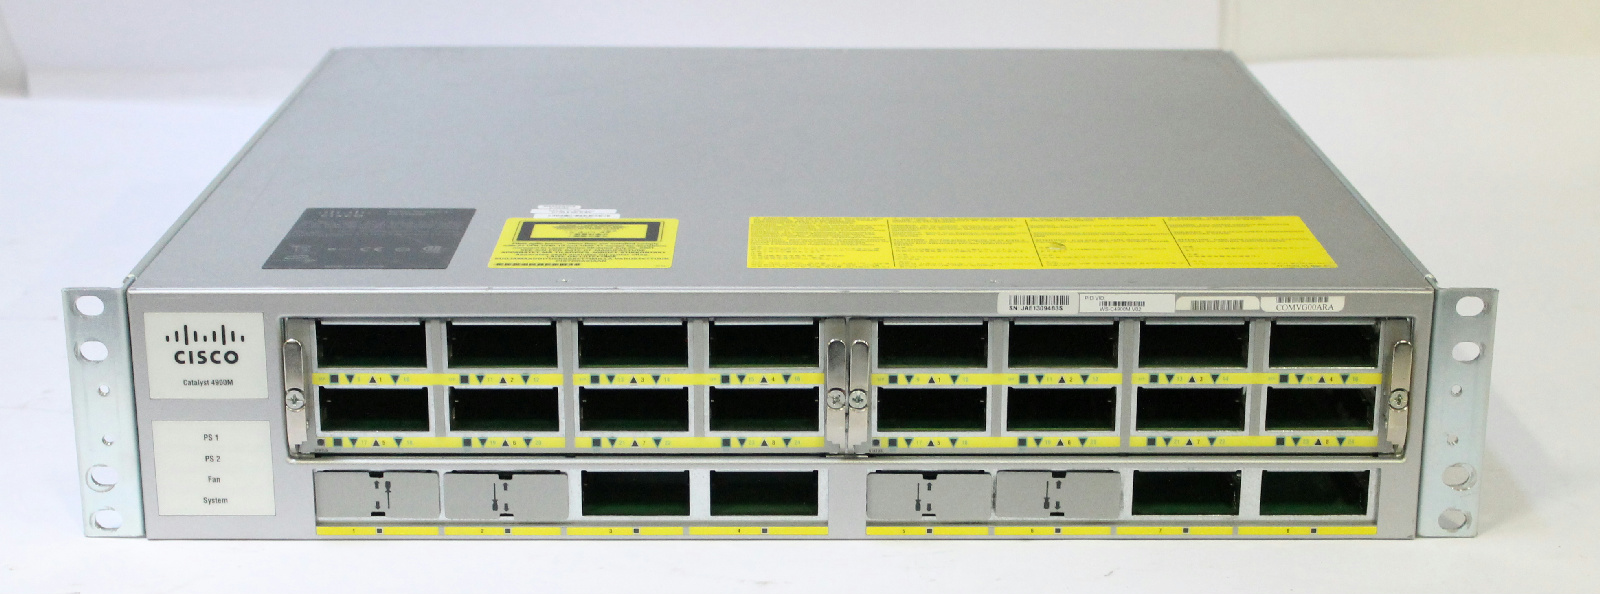 Port Network Cisco Ws C4900m 10ge Port Network Switch With 2x Ws X4908 10ge Modules